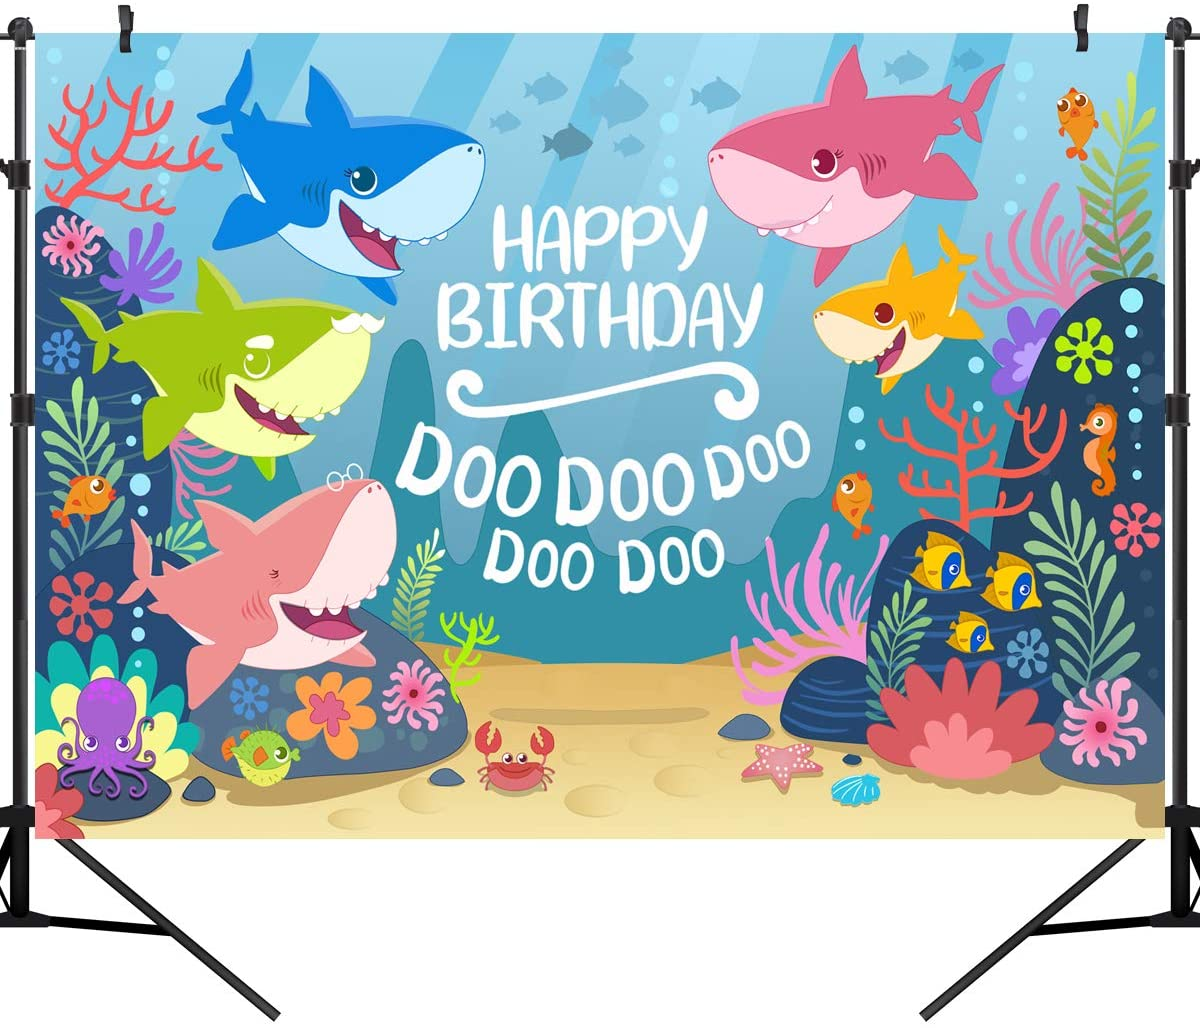 OUYIDA 5X3FT Blue Ocean Shark Birthday Party Background Baby Shark Party Backdrop Baby Shark Banner Photography backdrops Vinyl Photo Studio Props PCK25